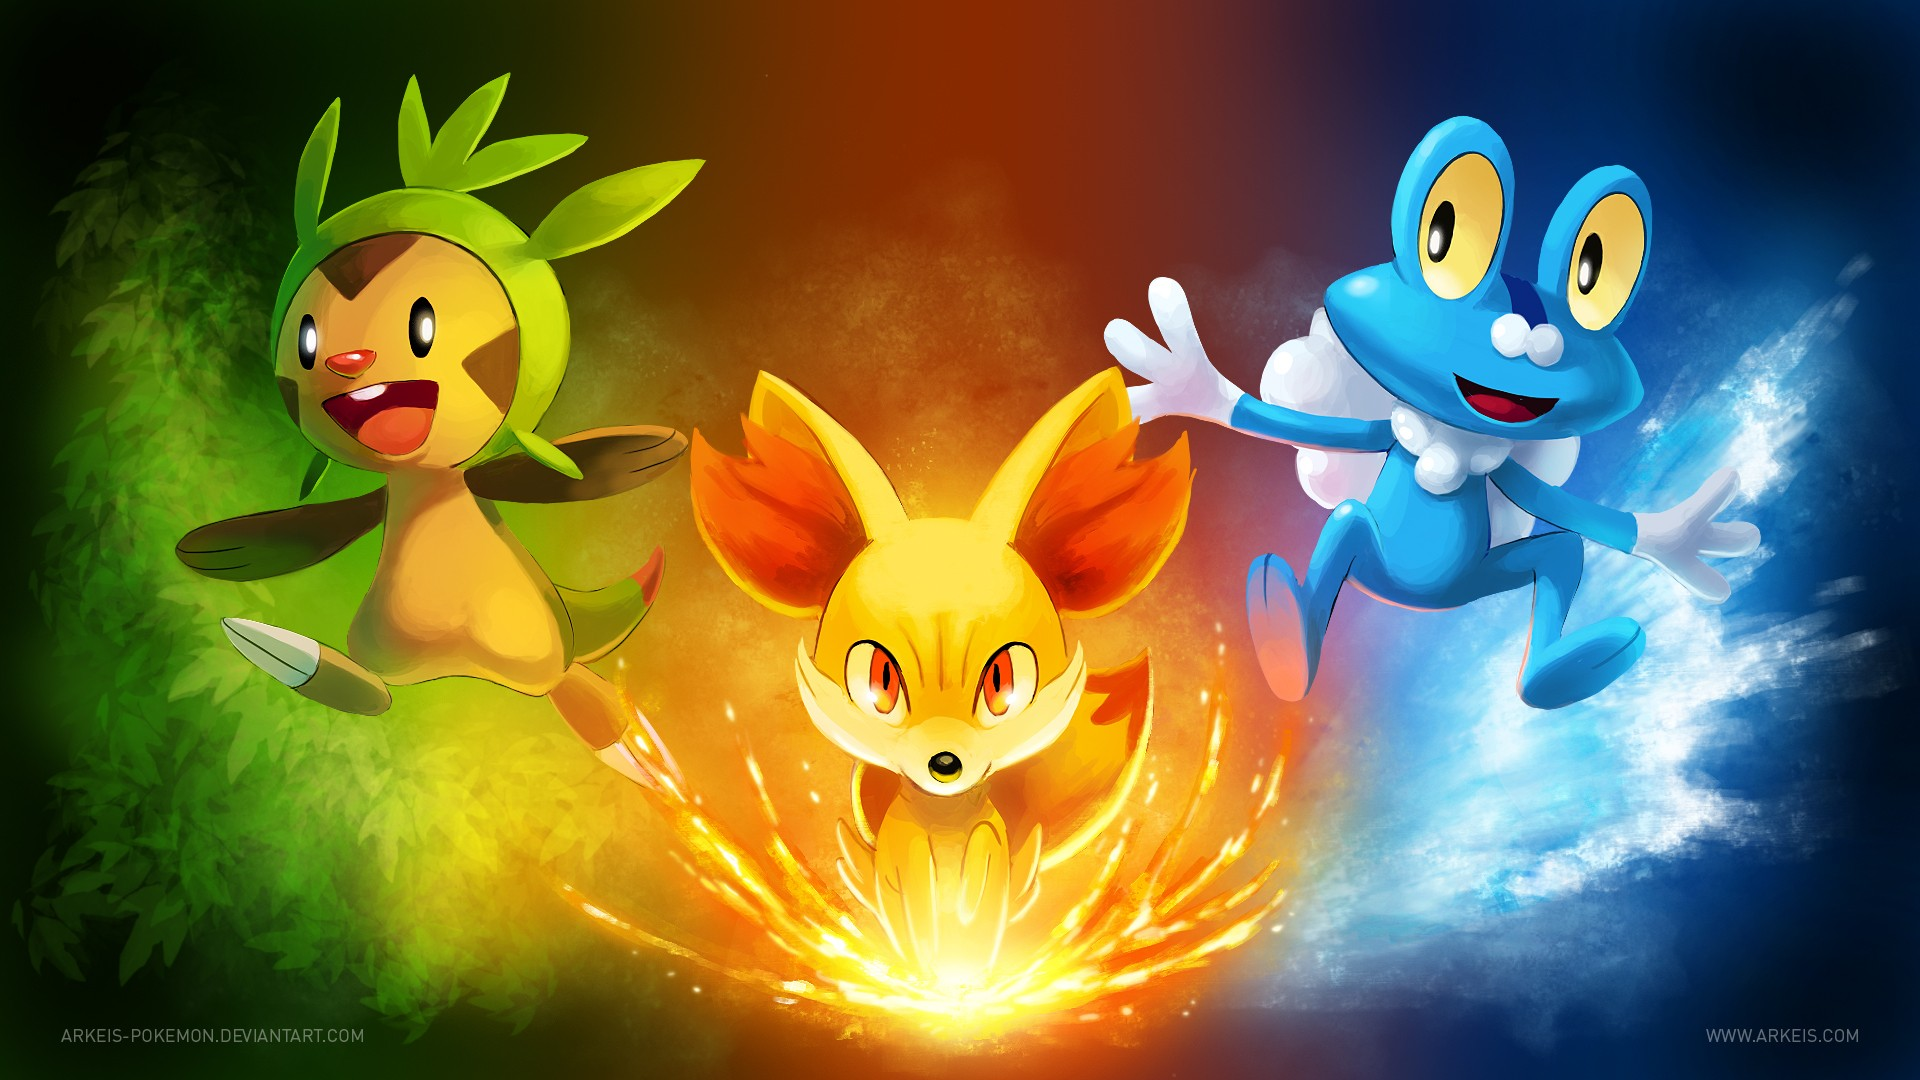 pokemon wallpaper in hd - photo #39